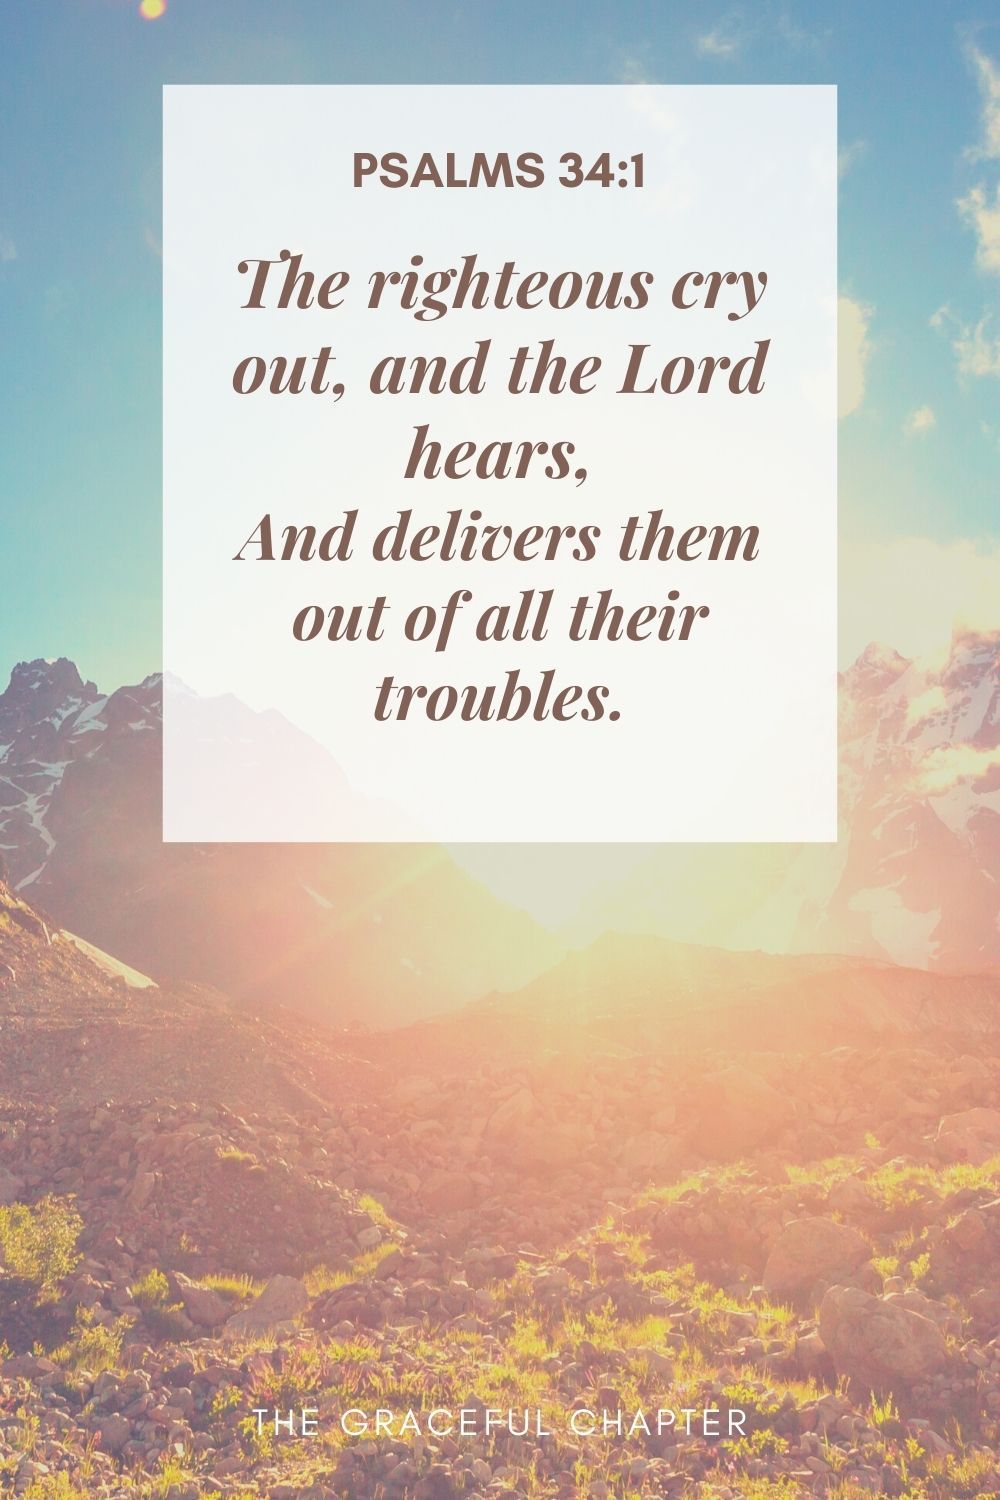 The righteous cry out, and the Lord hears, And delivers them out of all their troubles. Psalms 34:1